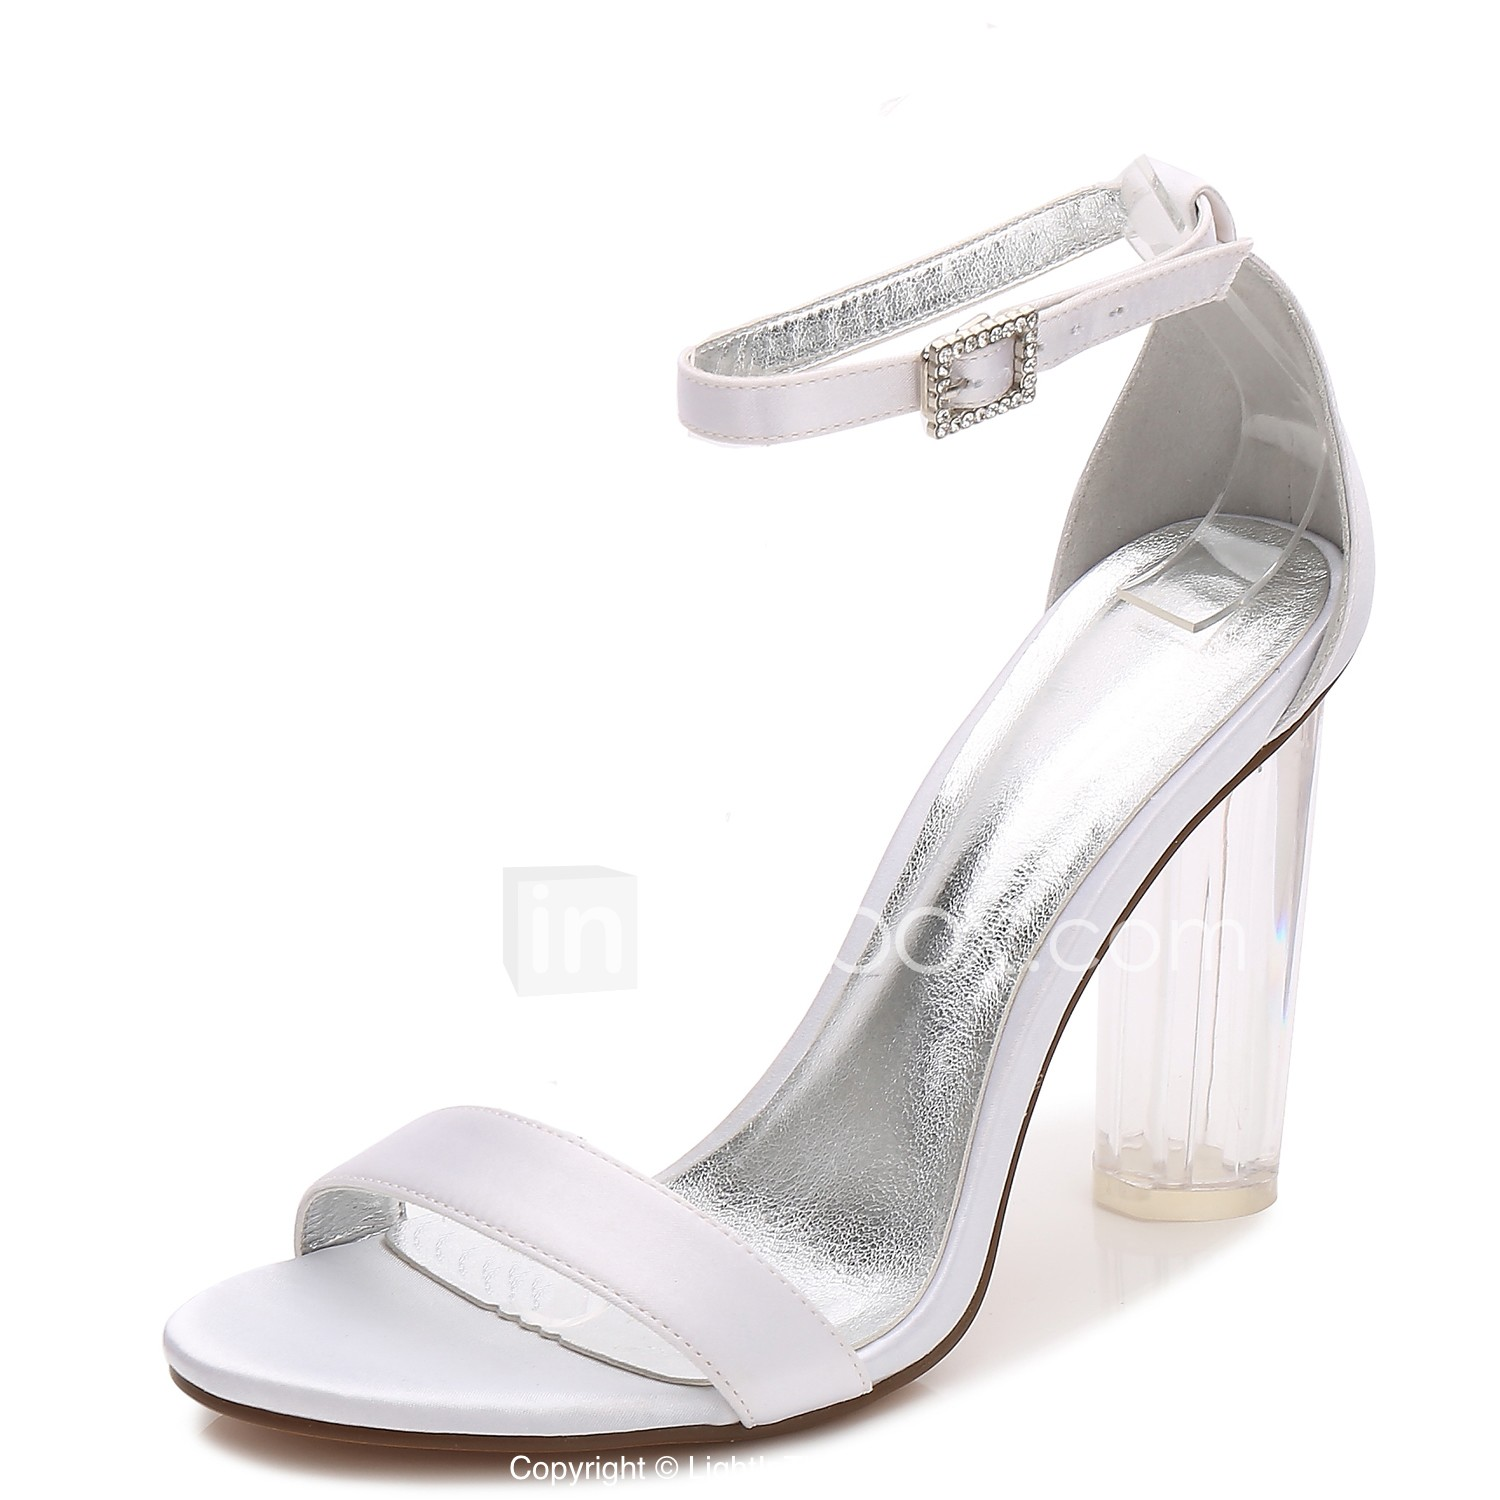 0086e8c937 ... Satin Spring / Summer T-Strap / Basic Pump / Ankle Strap Wedding Shoes  Chunky Heel / Translucent Heel / Crystal Heel Round Toe Rhinestone /  Sparkling ...